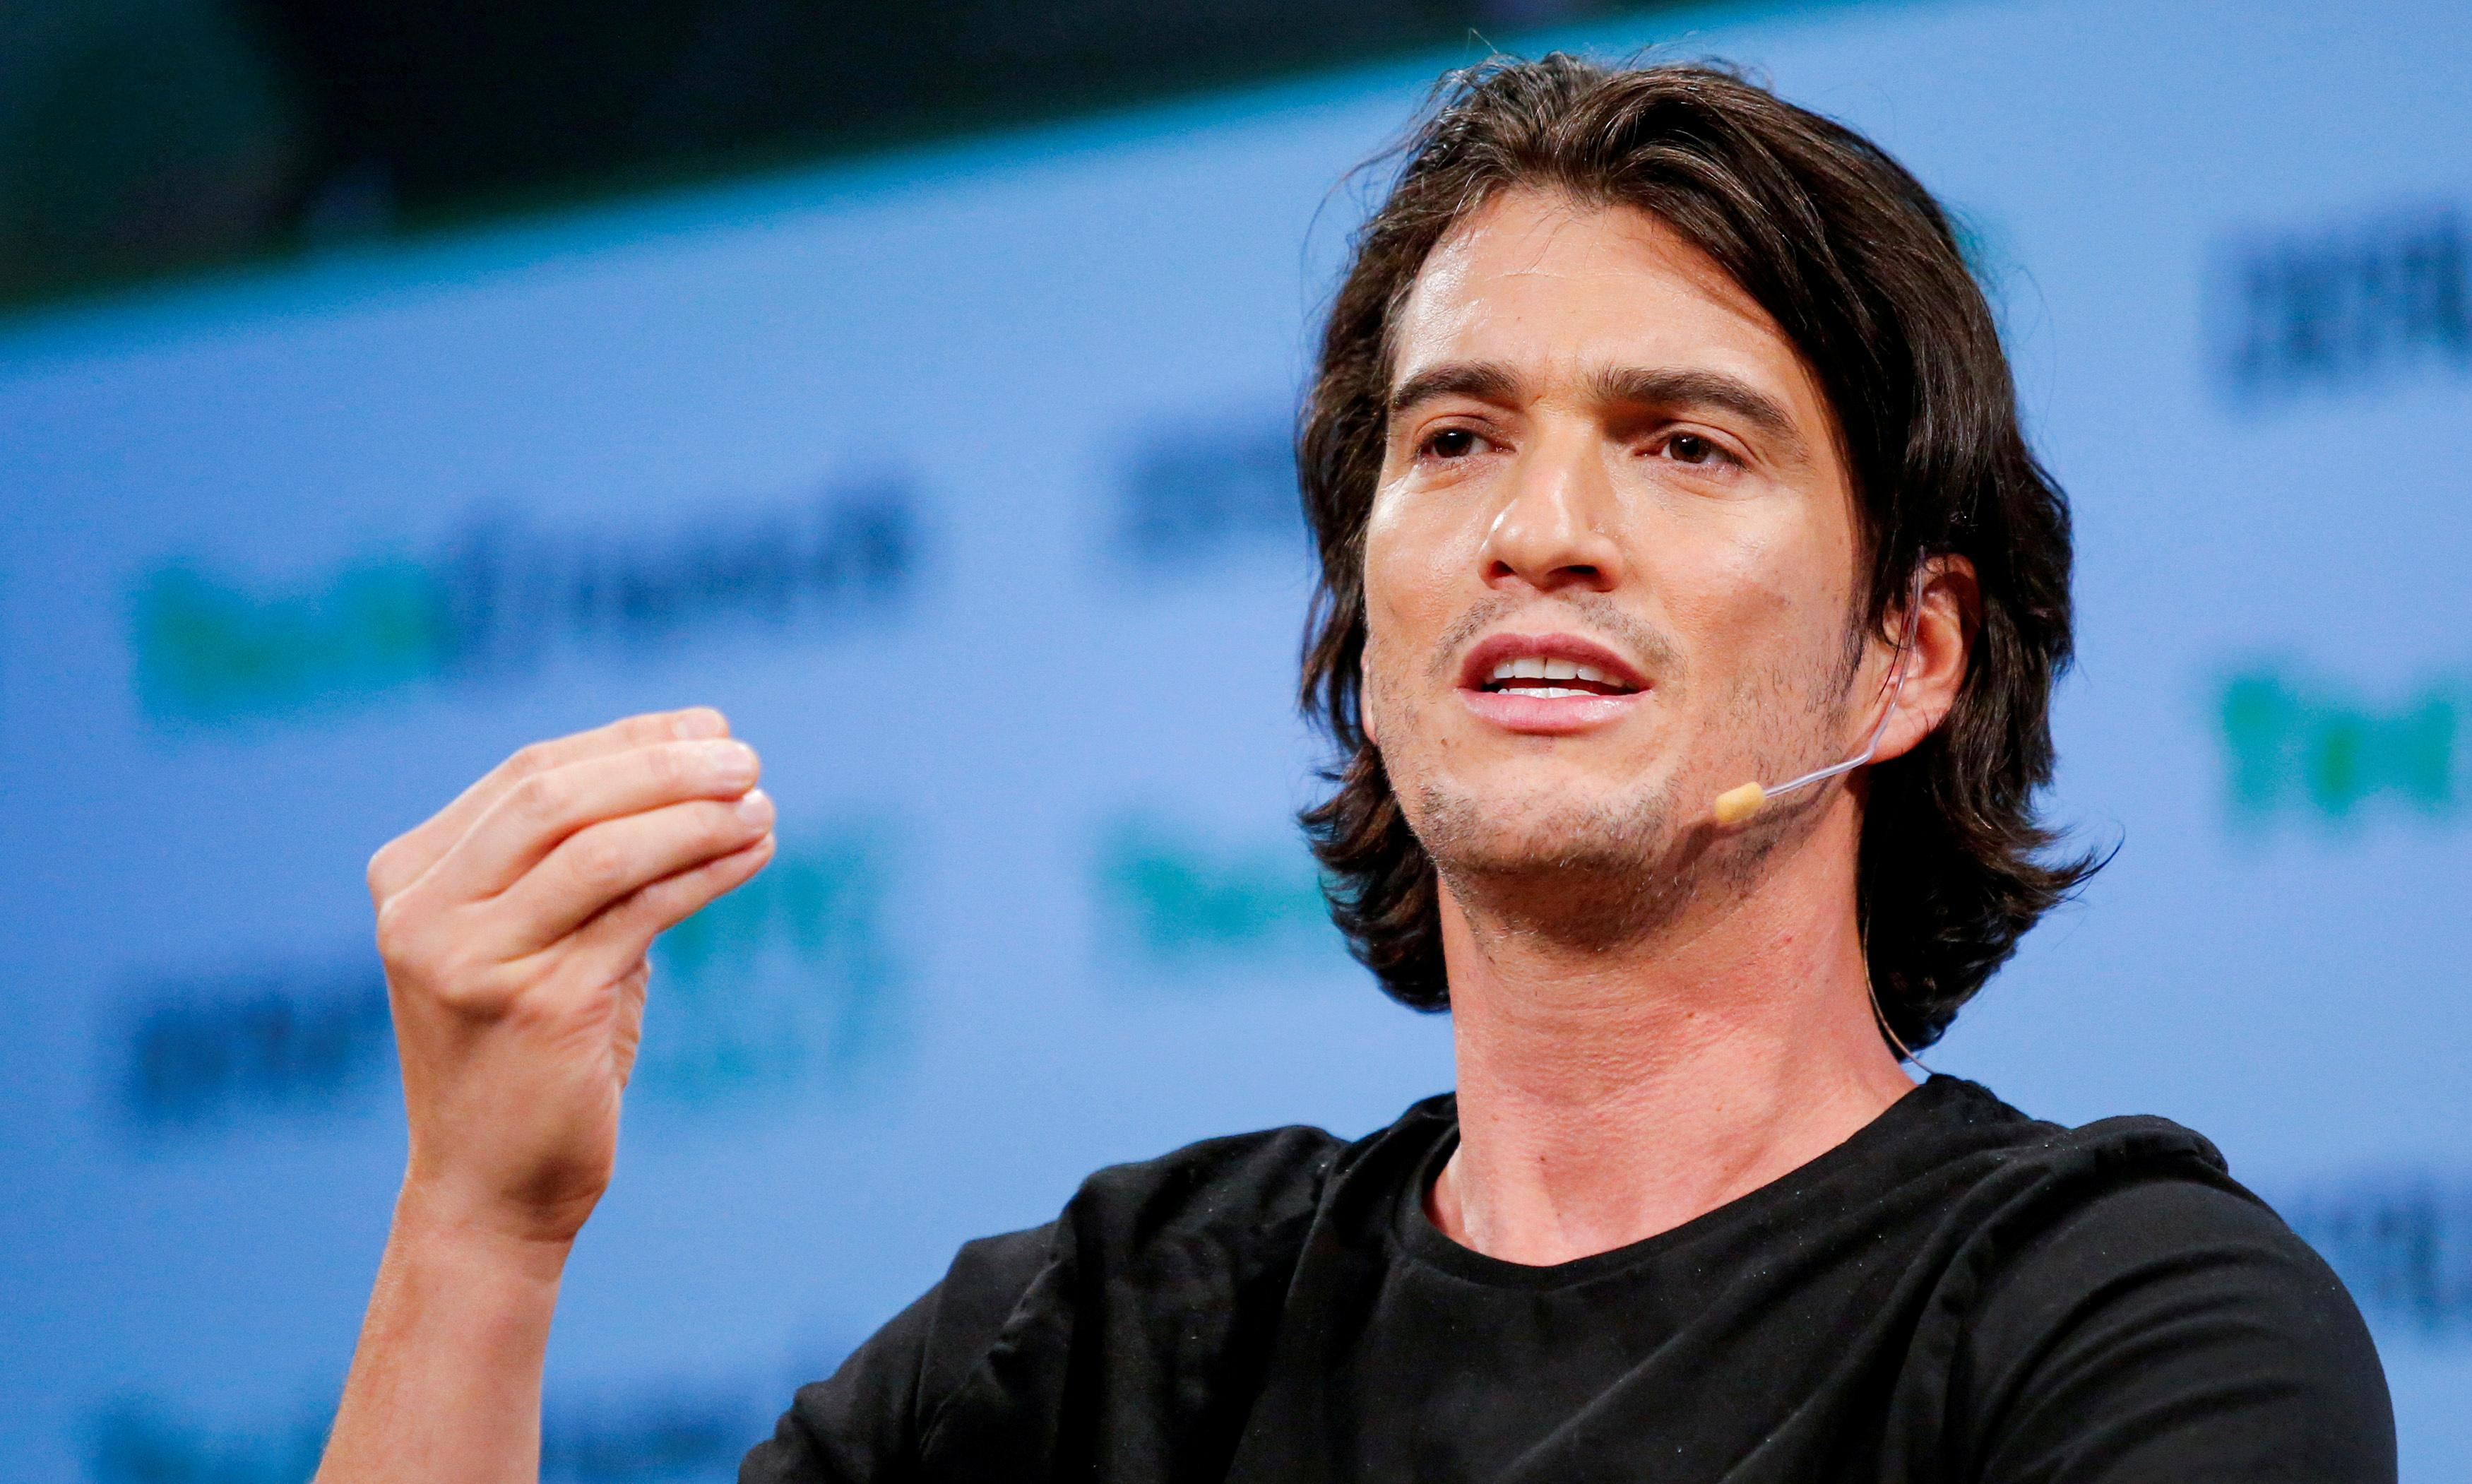 'A giant question mark': can WeWork's Adam Neumann reassure investors?